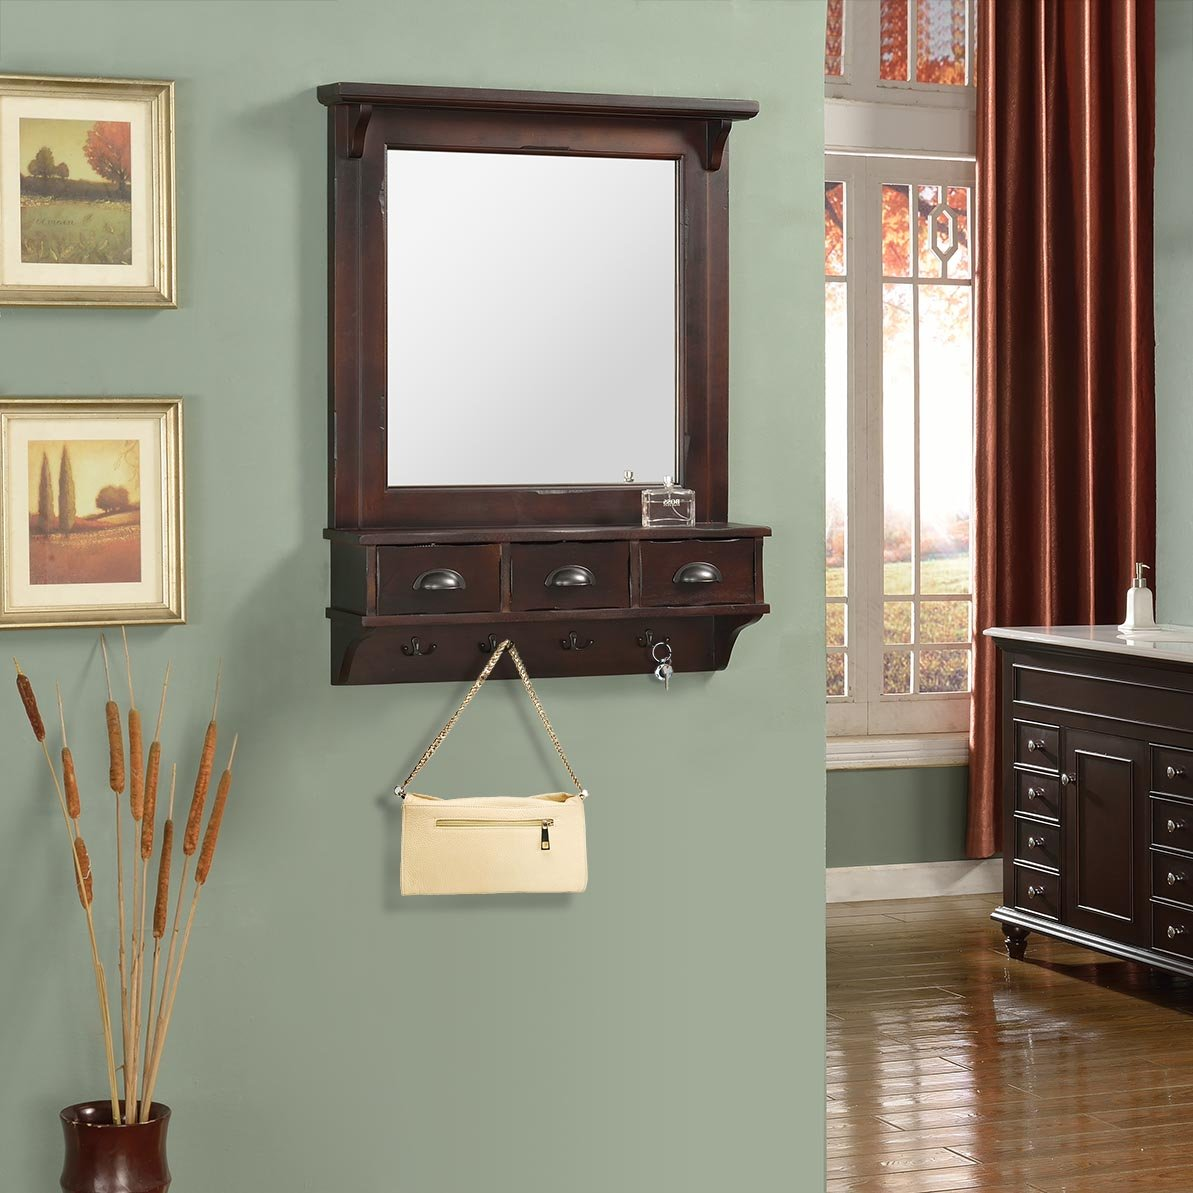 Proman Products Bombay Wall Mirror